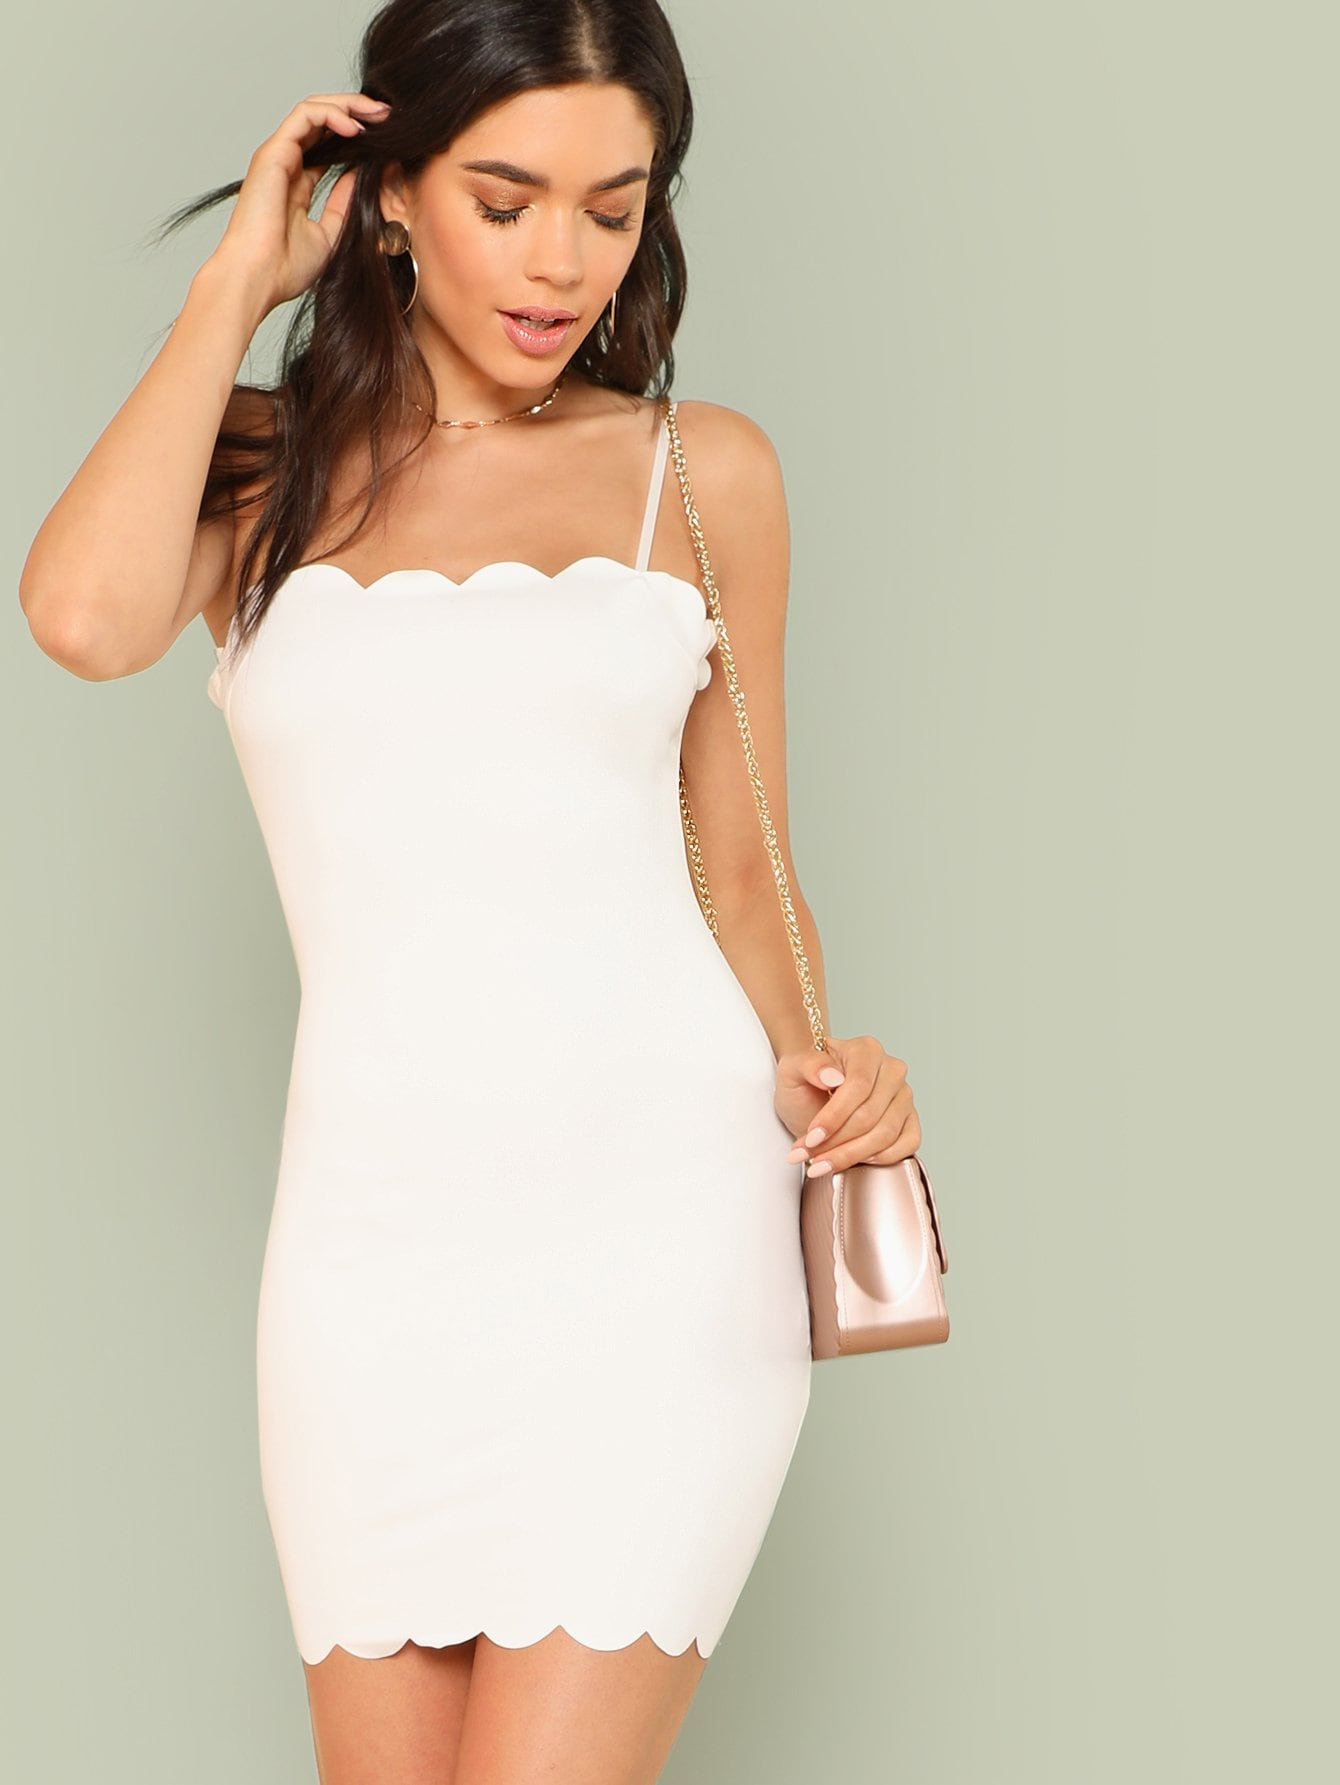 Form Fitting Scalloped Cami Dress scalloped fitting tee